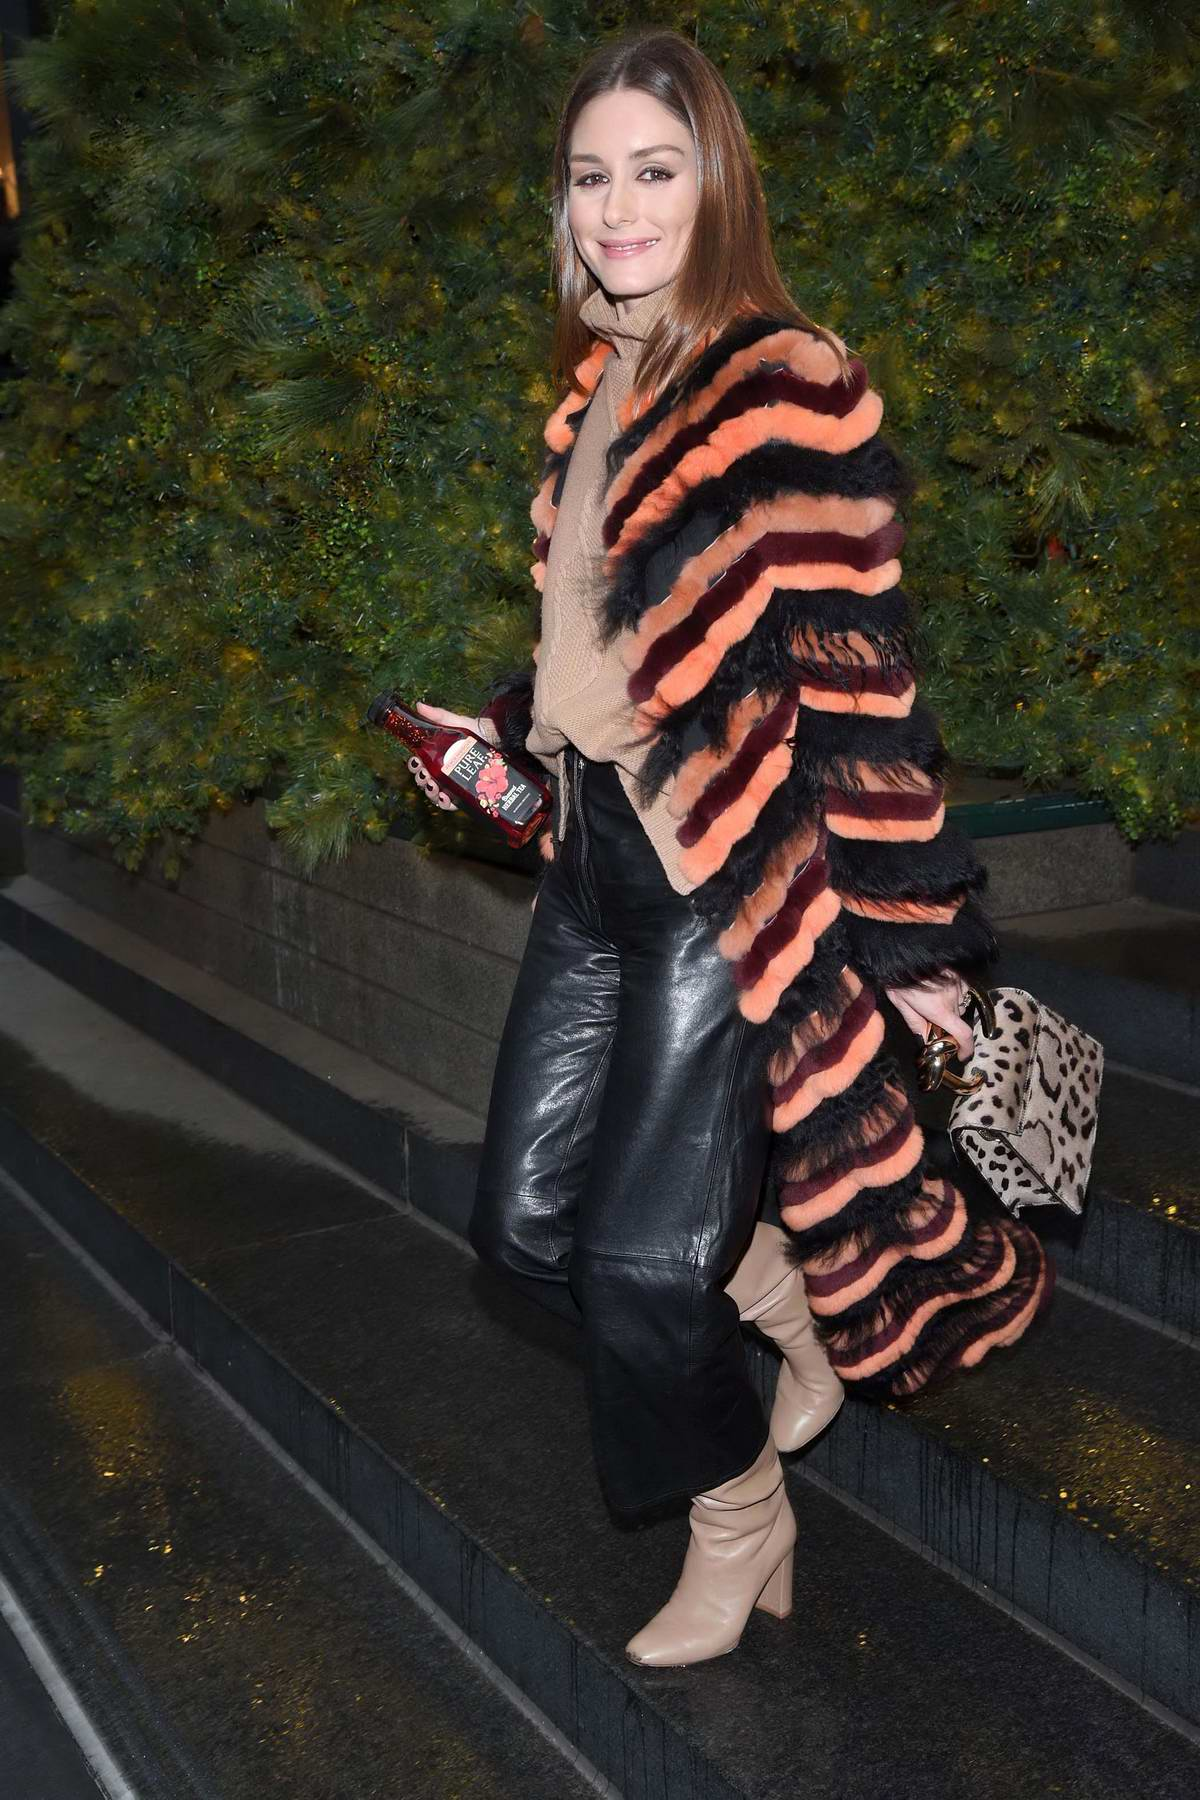 Olivia Palermo look chic in an orange and black fur coat, black leather pants and beige sweater with matching boots while out in New York City